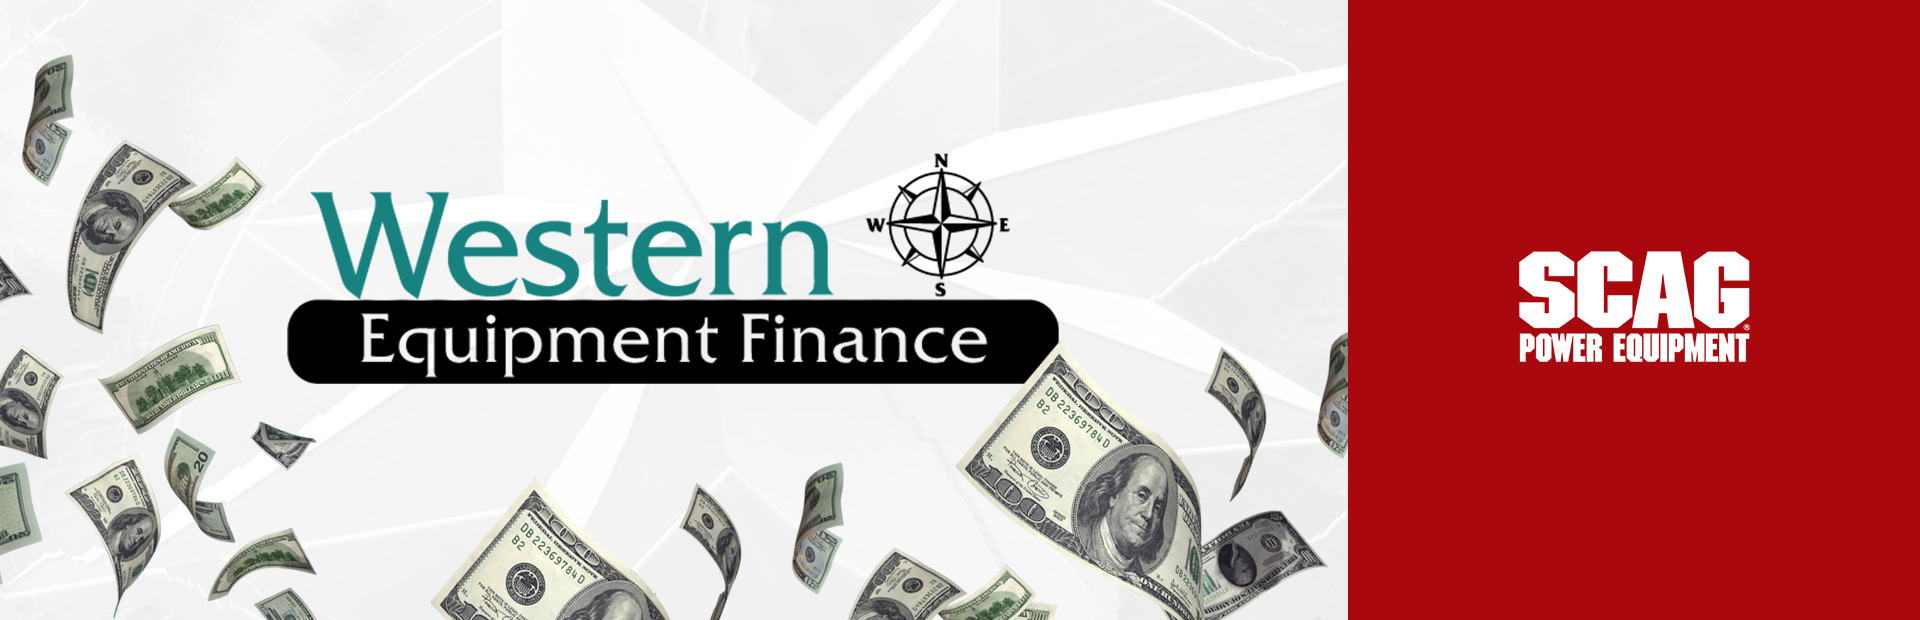 Scag: Western Equipment Finance Programs